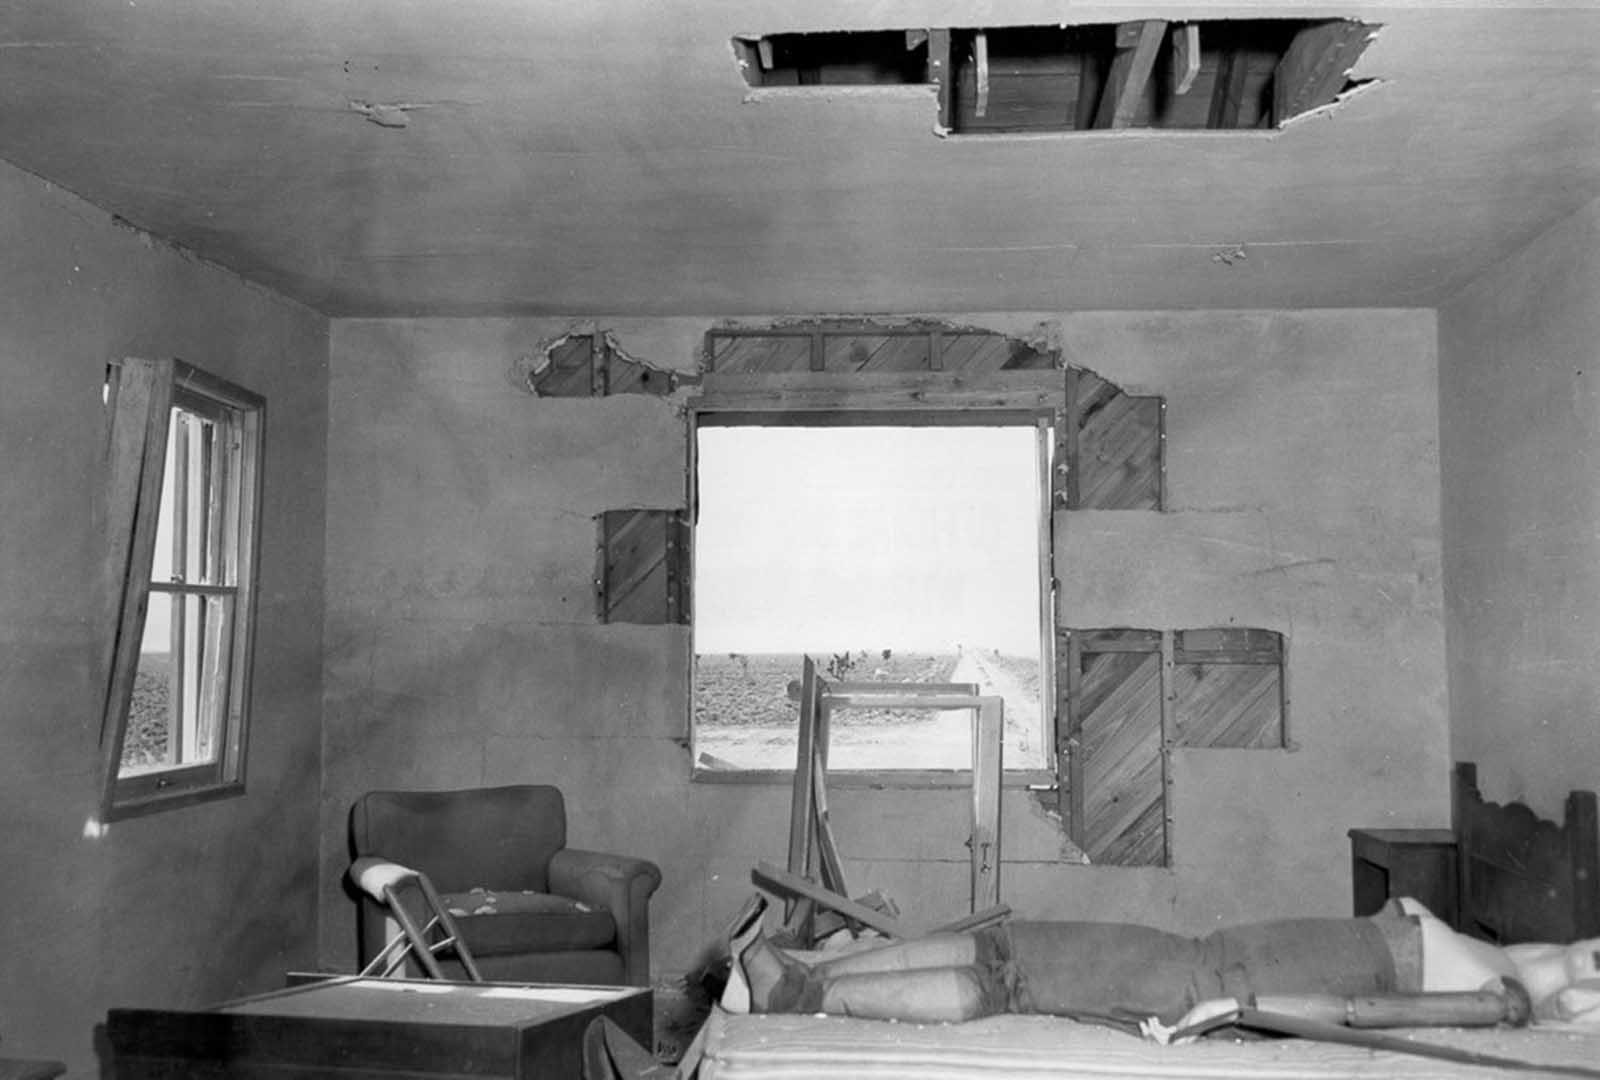 (2 of 2) After the blast, a damaged bedroom, window and blankets missing, resulting from a test during an atomic blast on March 17, 1953.